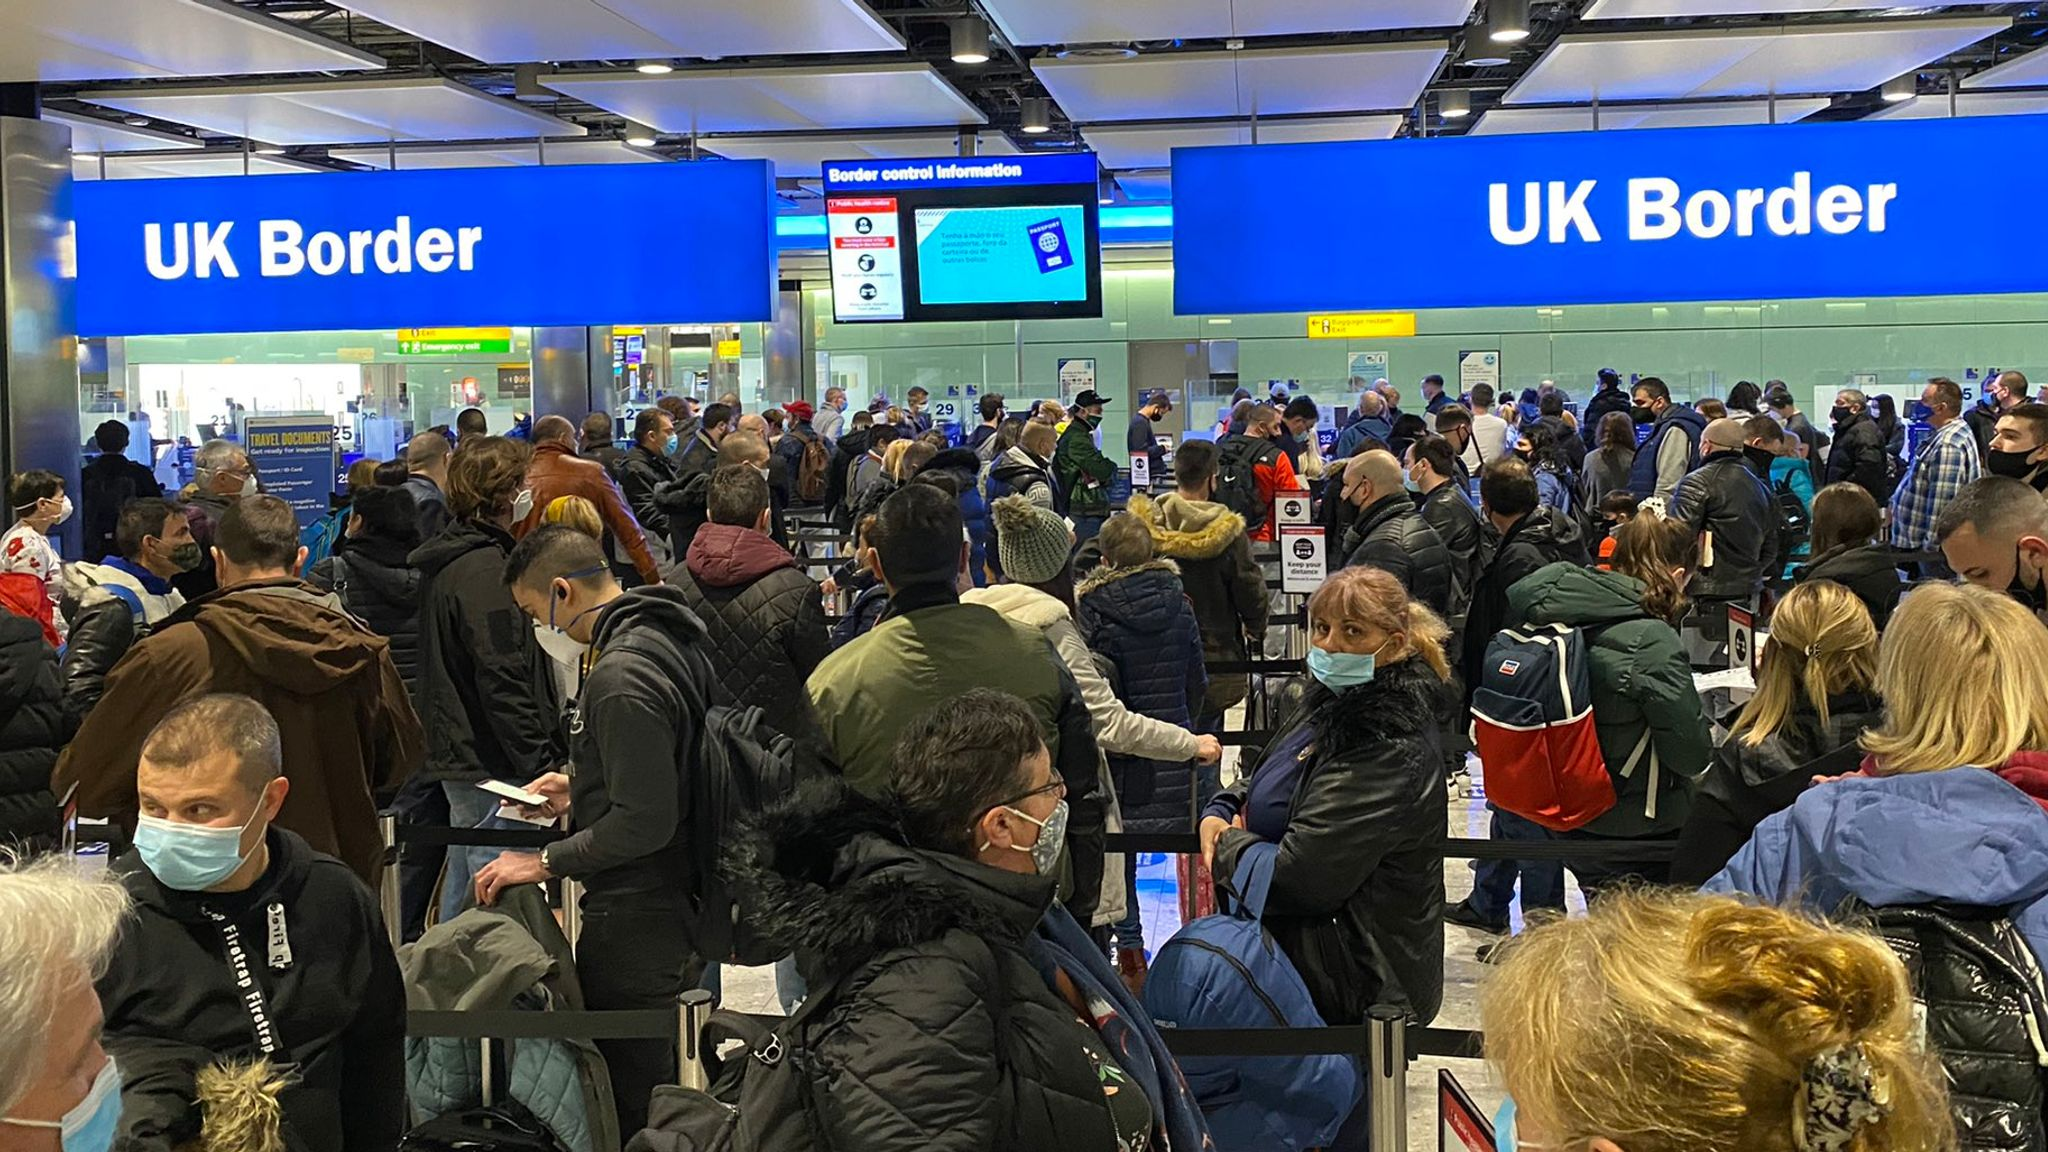 COVID-19: Crowds at Heathrow Airport spark social distancing concerns | UK  News | Sky News